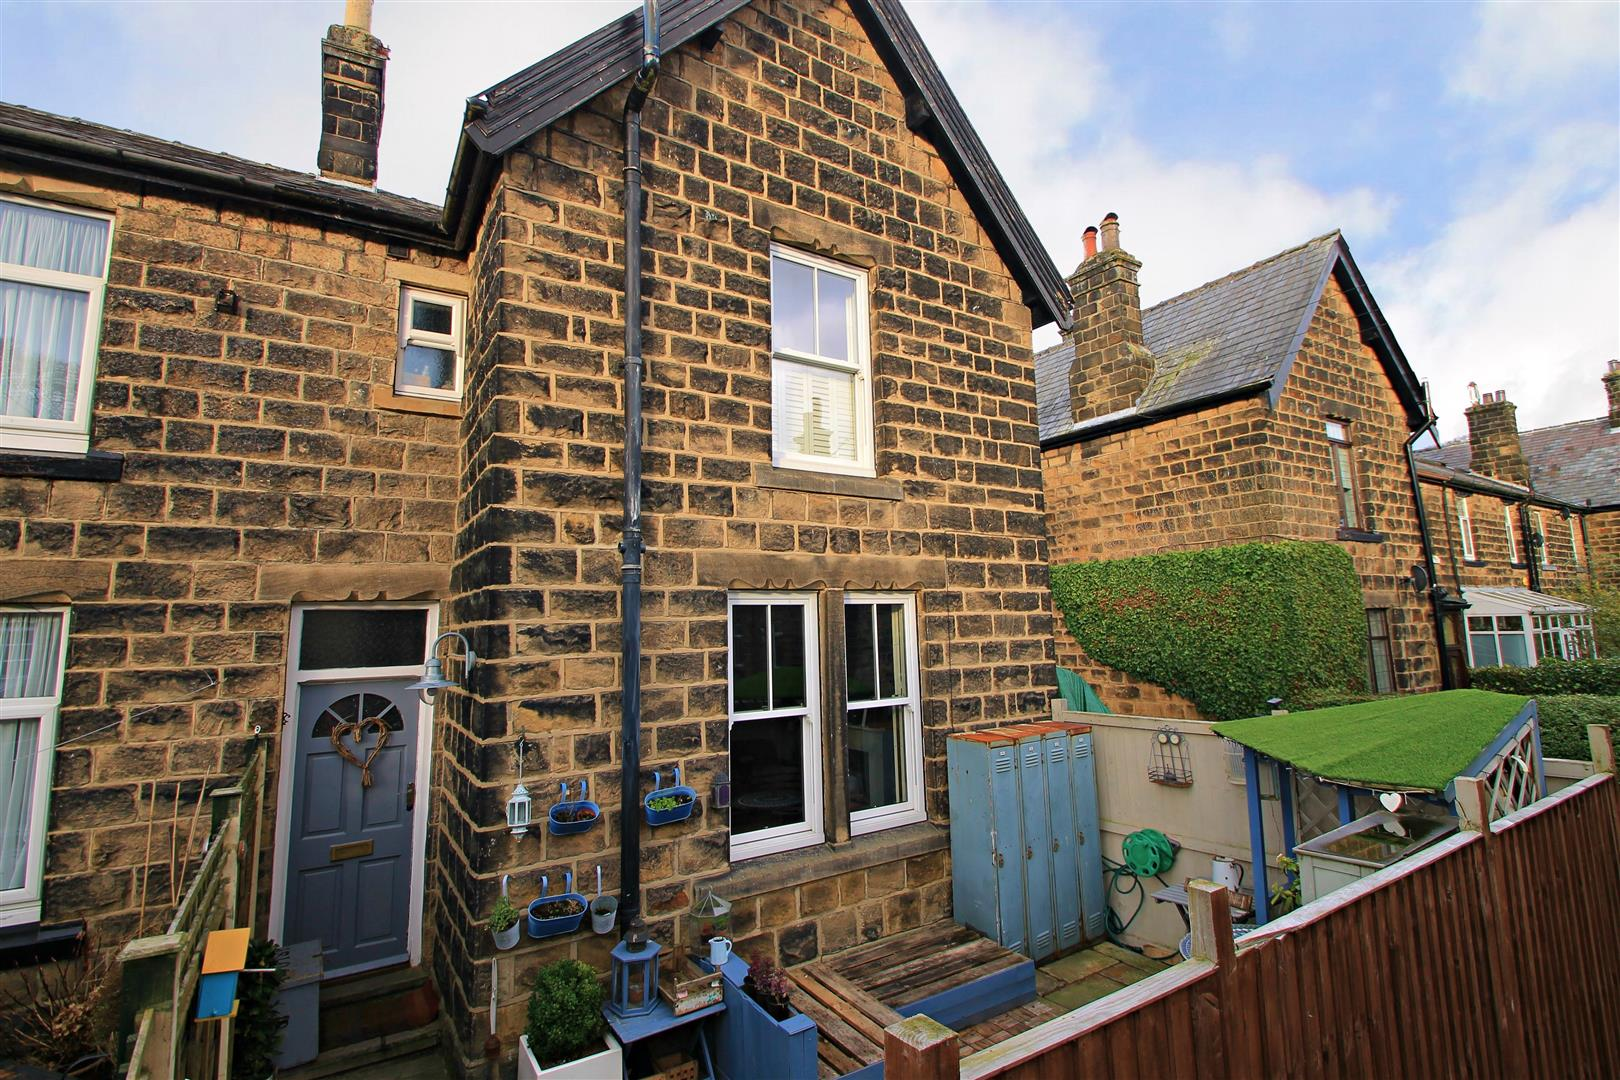 South View, Menston, LS29 6JX